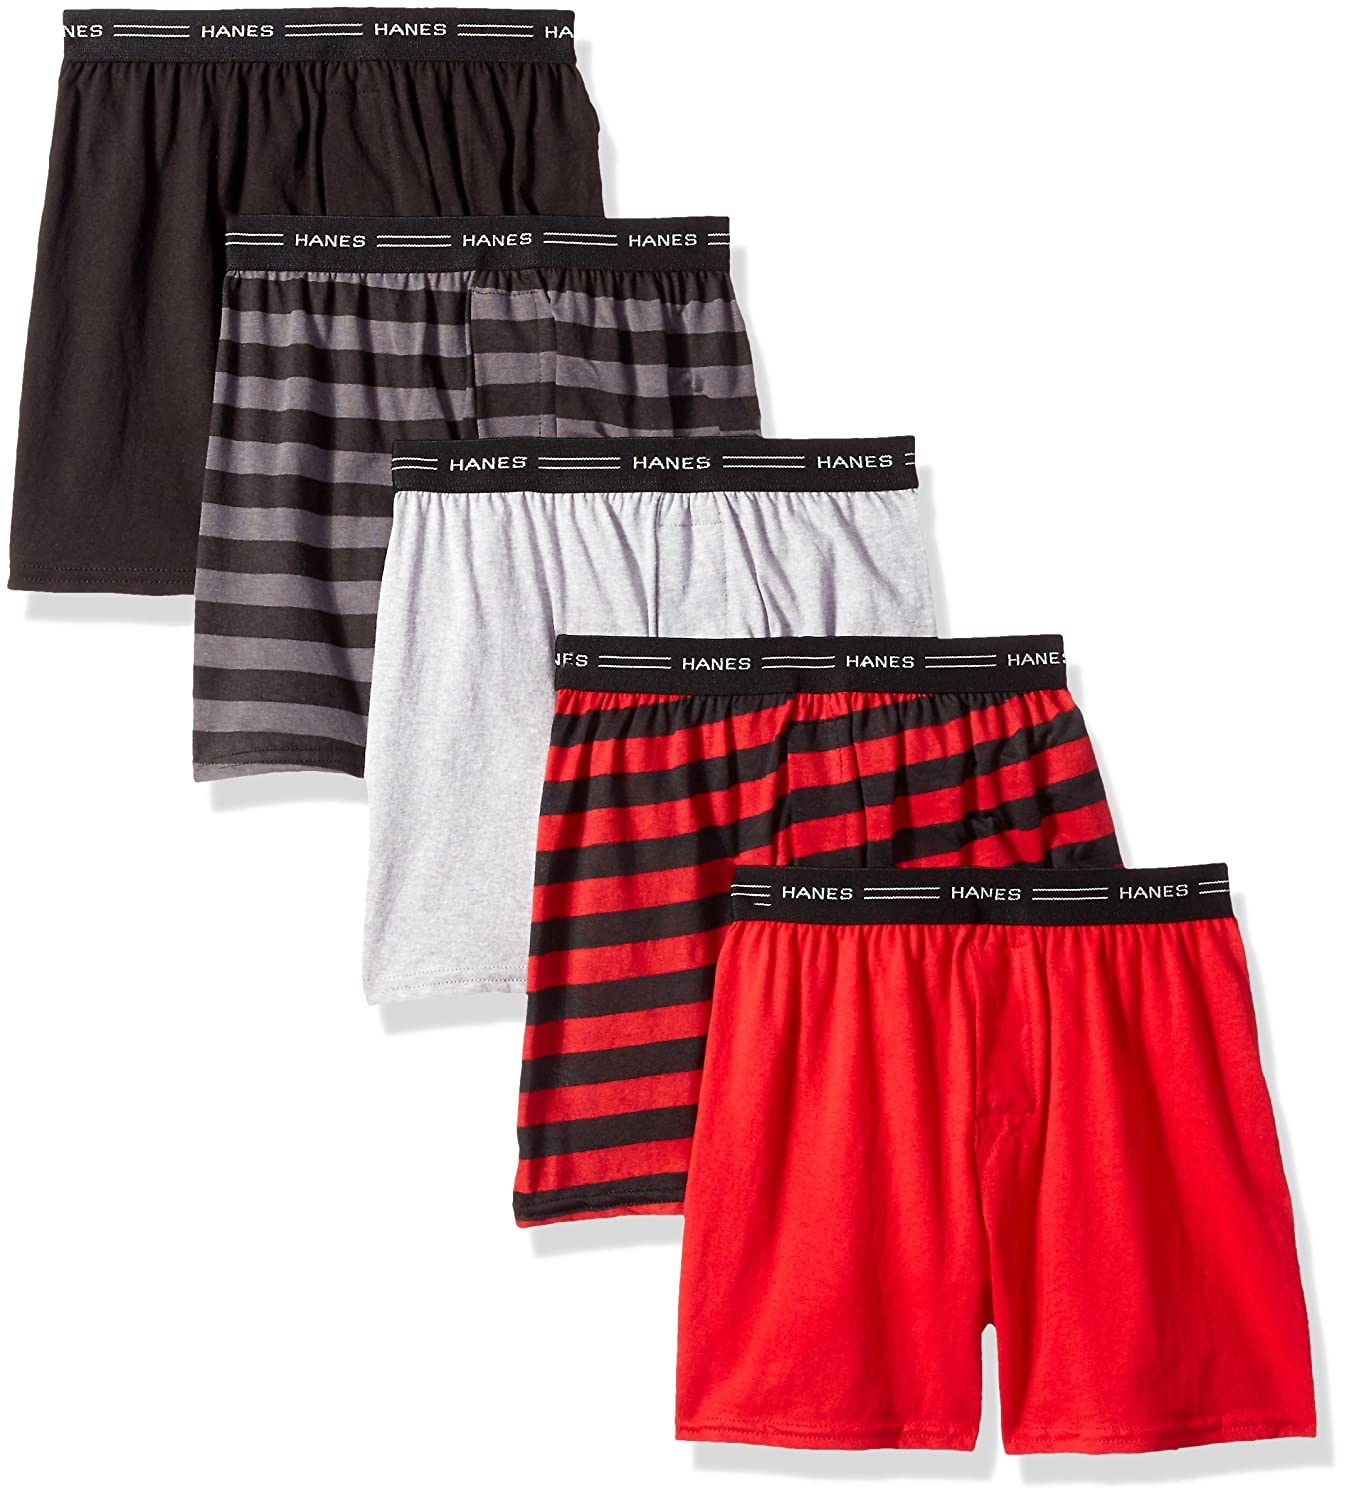 Hanes Big Boys' Comfort Flex Solid Knit Boxer Assorted Small Hanes Boys Red Label Bottoms B539P5